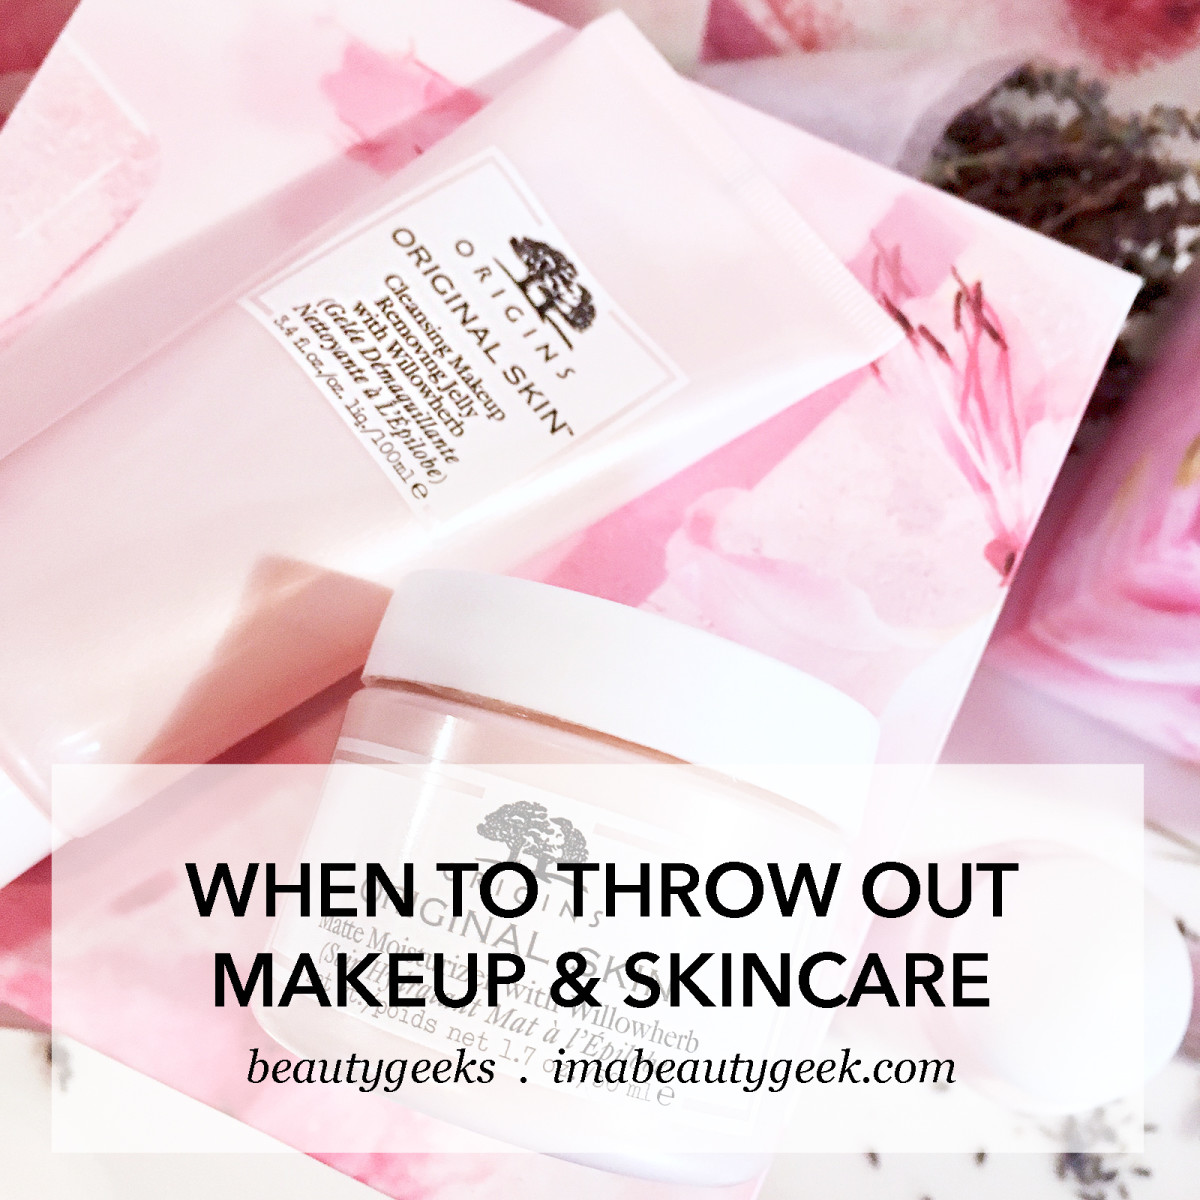 When to throw out makeup and skincare-BEAUTYGEEKS